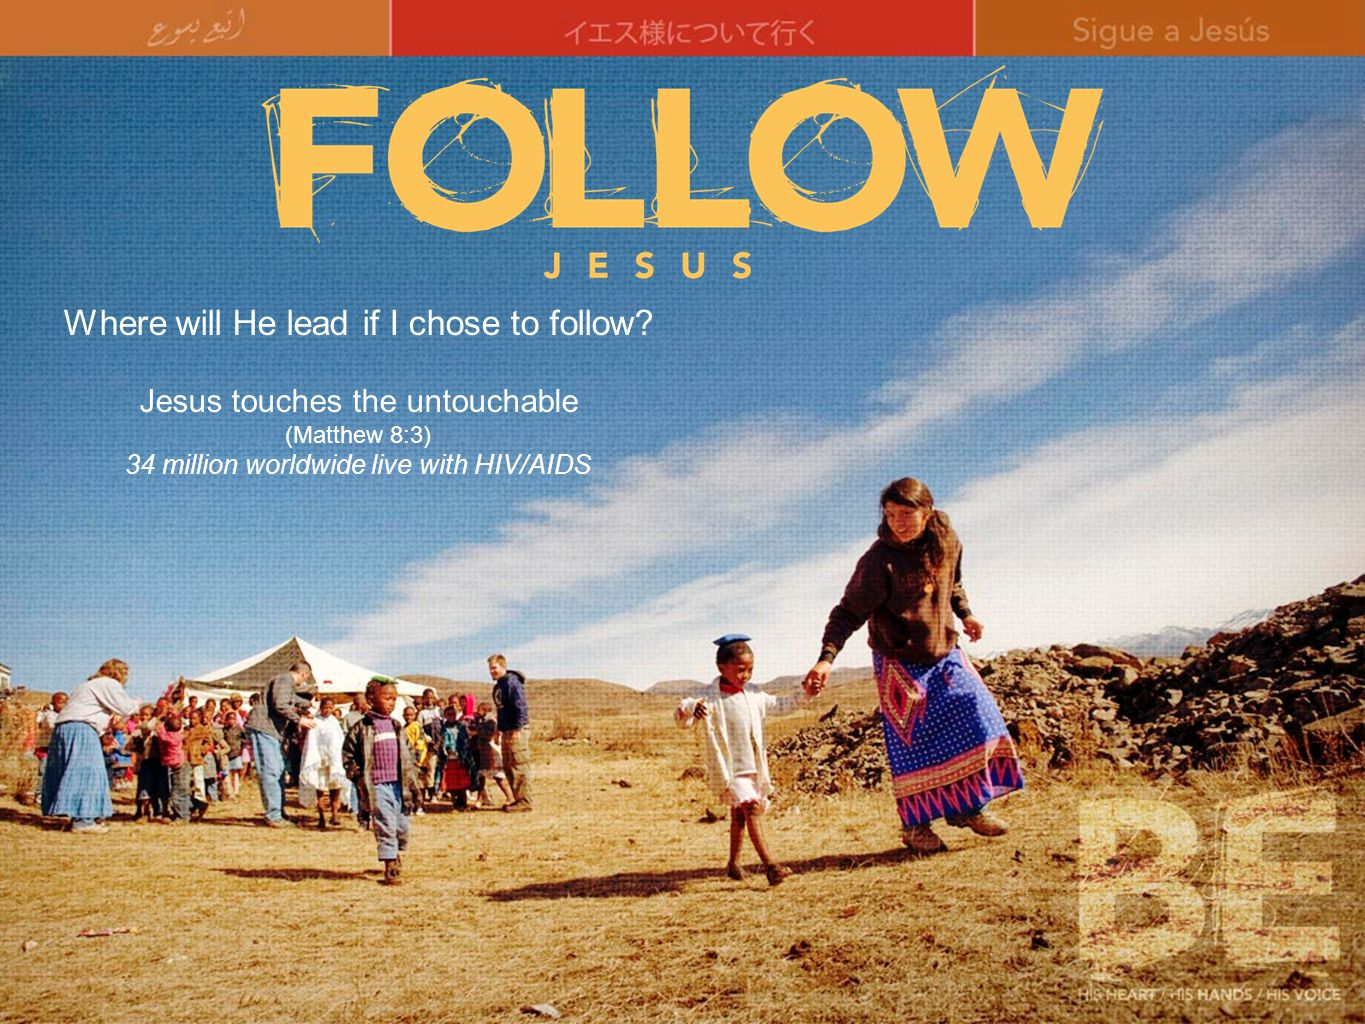 Where will He lead if I chose to follow.